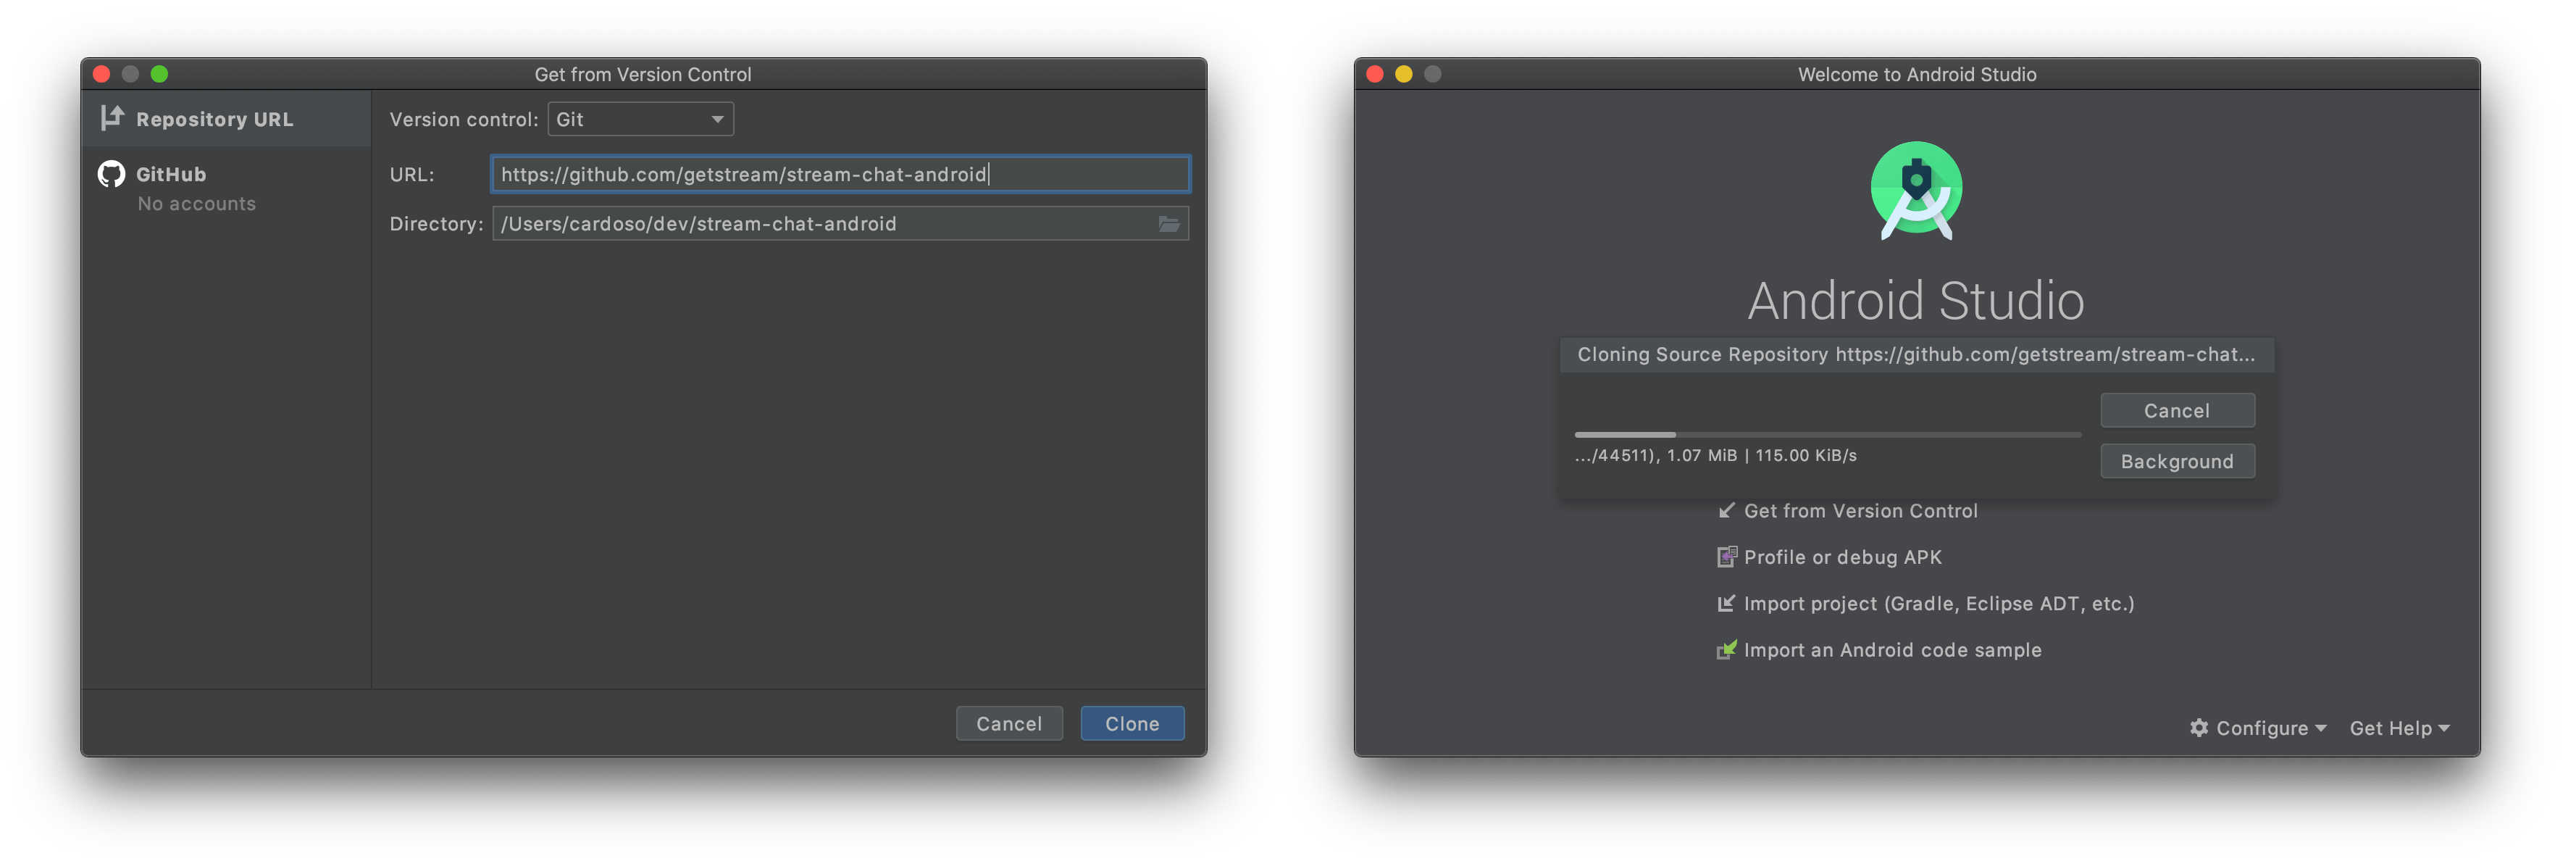 Image shows two Android Studio screens. One for typing the git repository URL and the other loading it as a project.